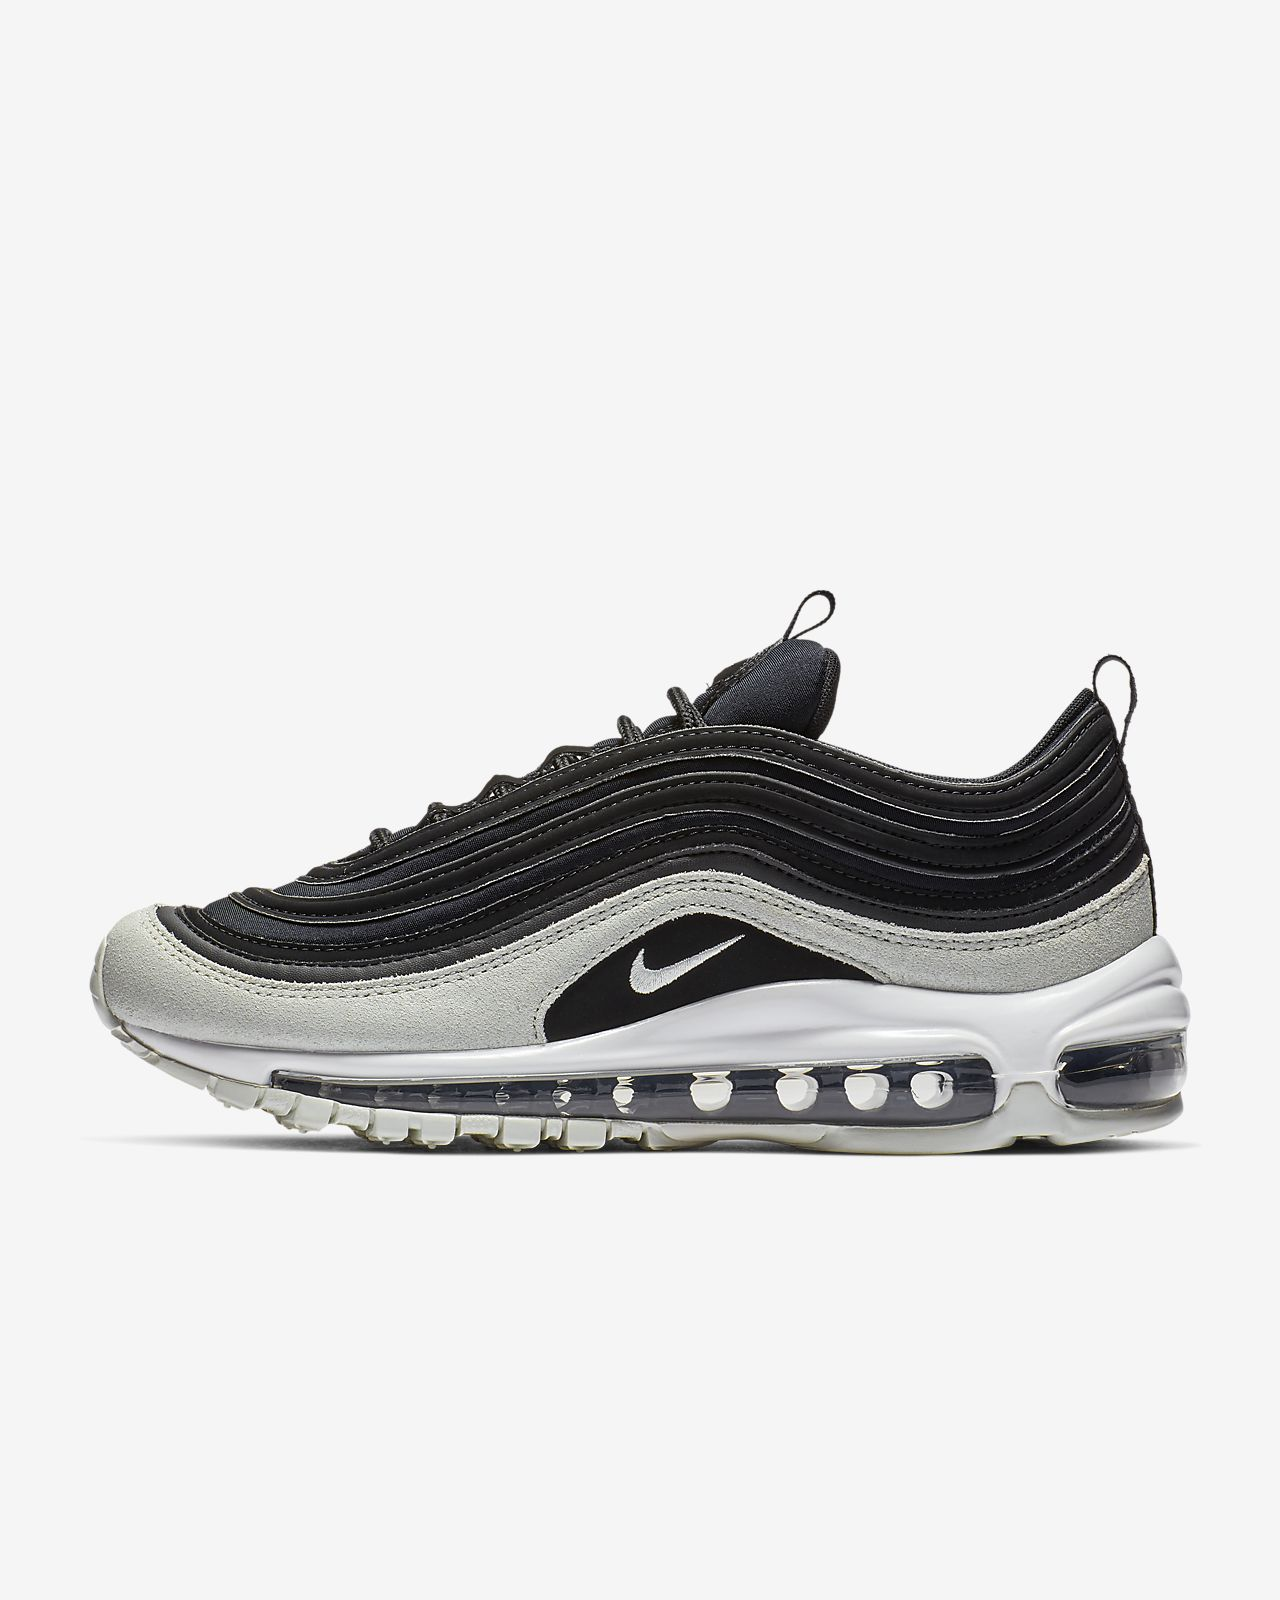 3a65892b82296b ... Nike Air Max 97 Premium Women s Shoe